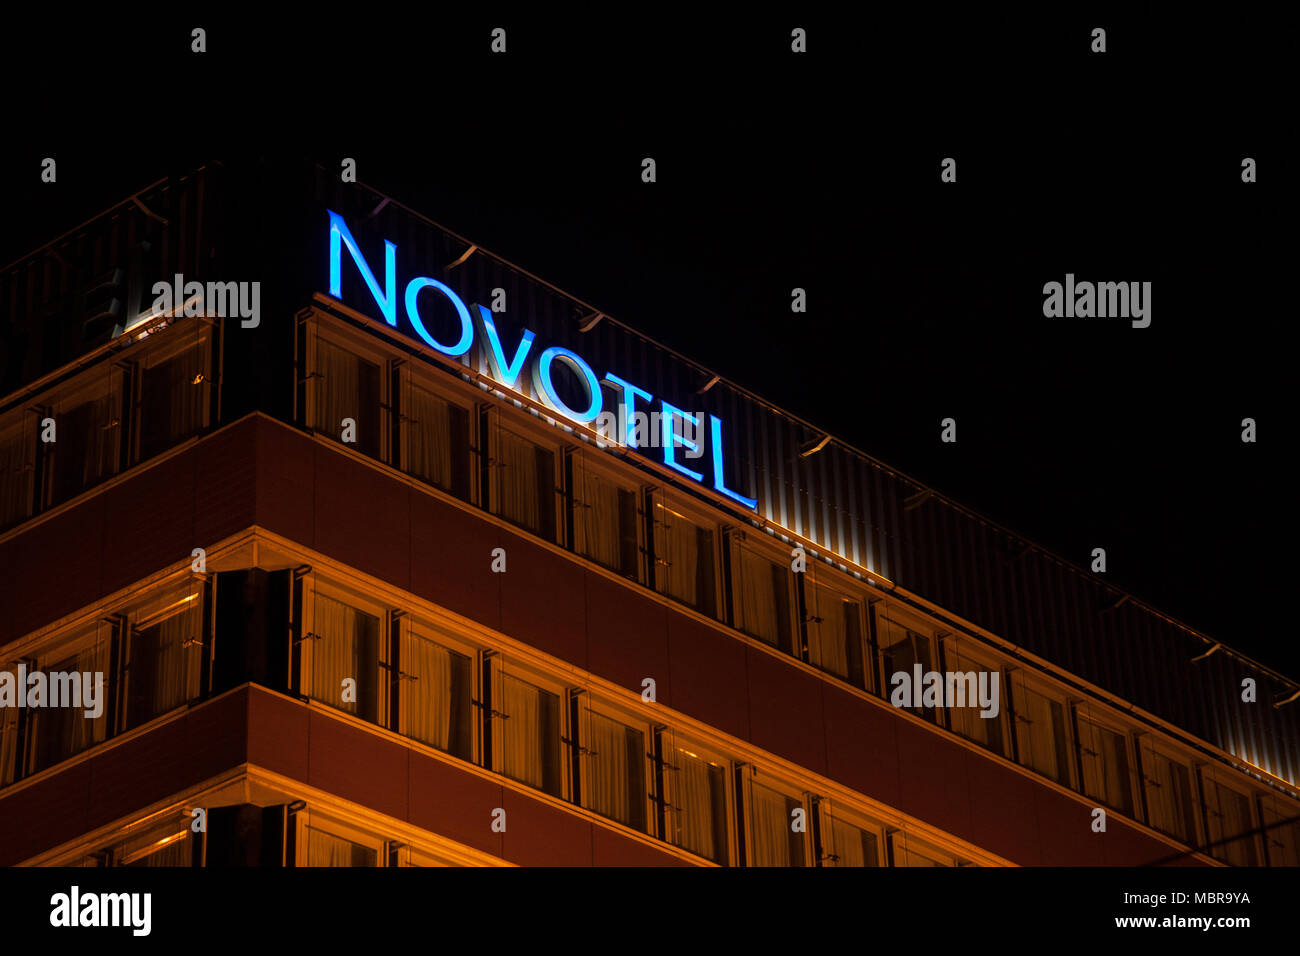 BUDAPEST, HUNGARY - APRIL 7, 2018: Novotel logo on their main hotel for Hungary during the evening. Novotel is a hotel chain of the Accorhotel group   - Stock Image